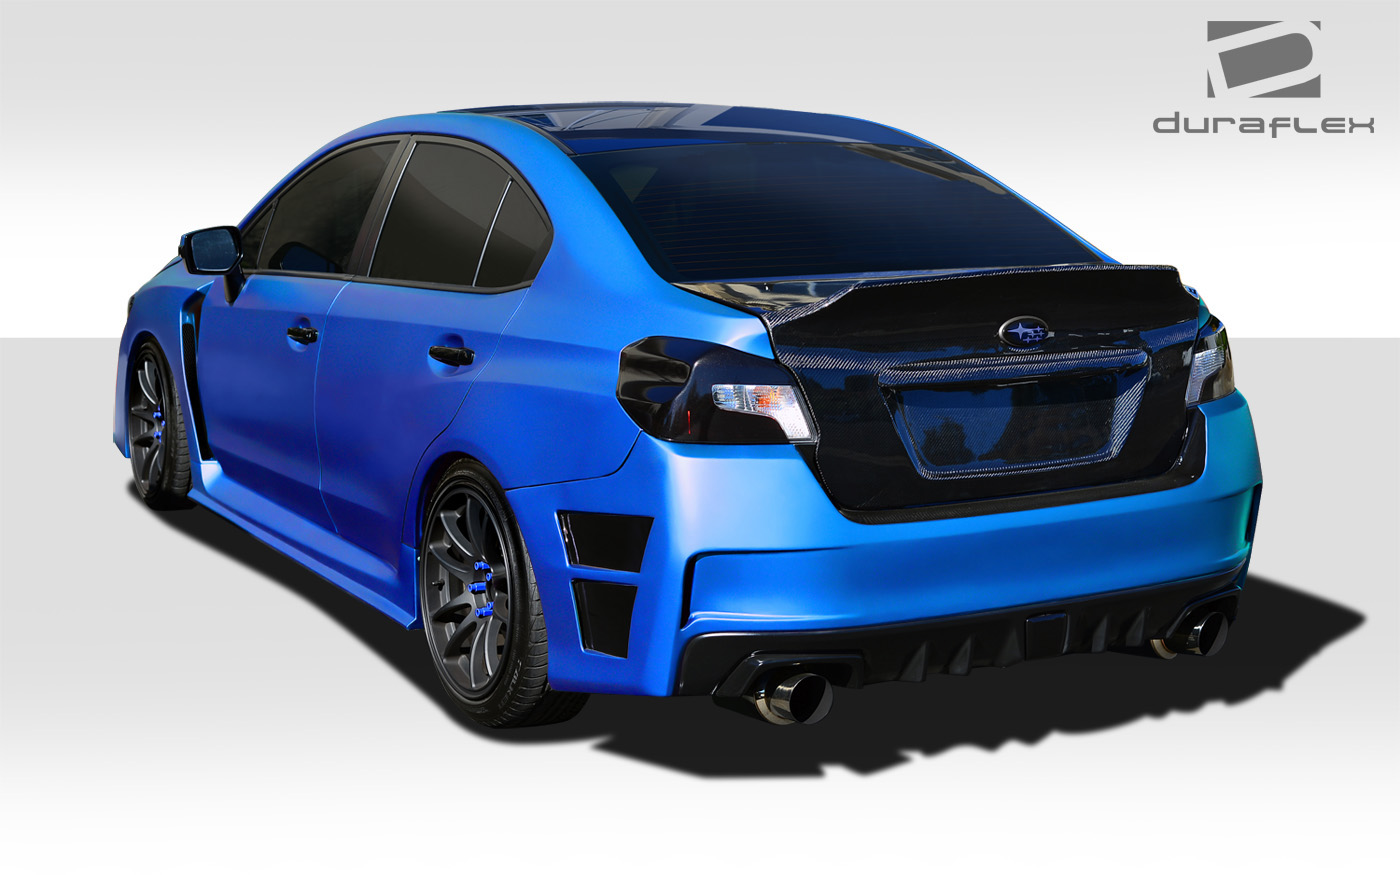 Subaru Wrx Sti Launch Edition >> Welcome to Extreme Dimensions :: Item Group :: 2015-2018 Subaru WRX Duraflex NBR Concept Body ...